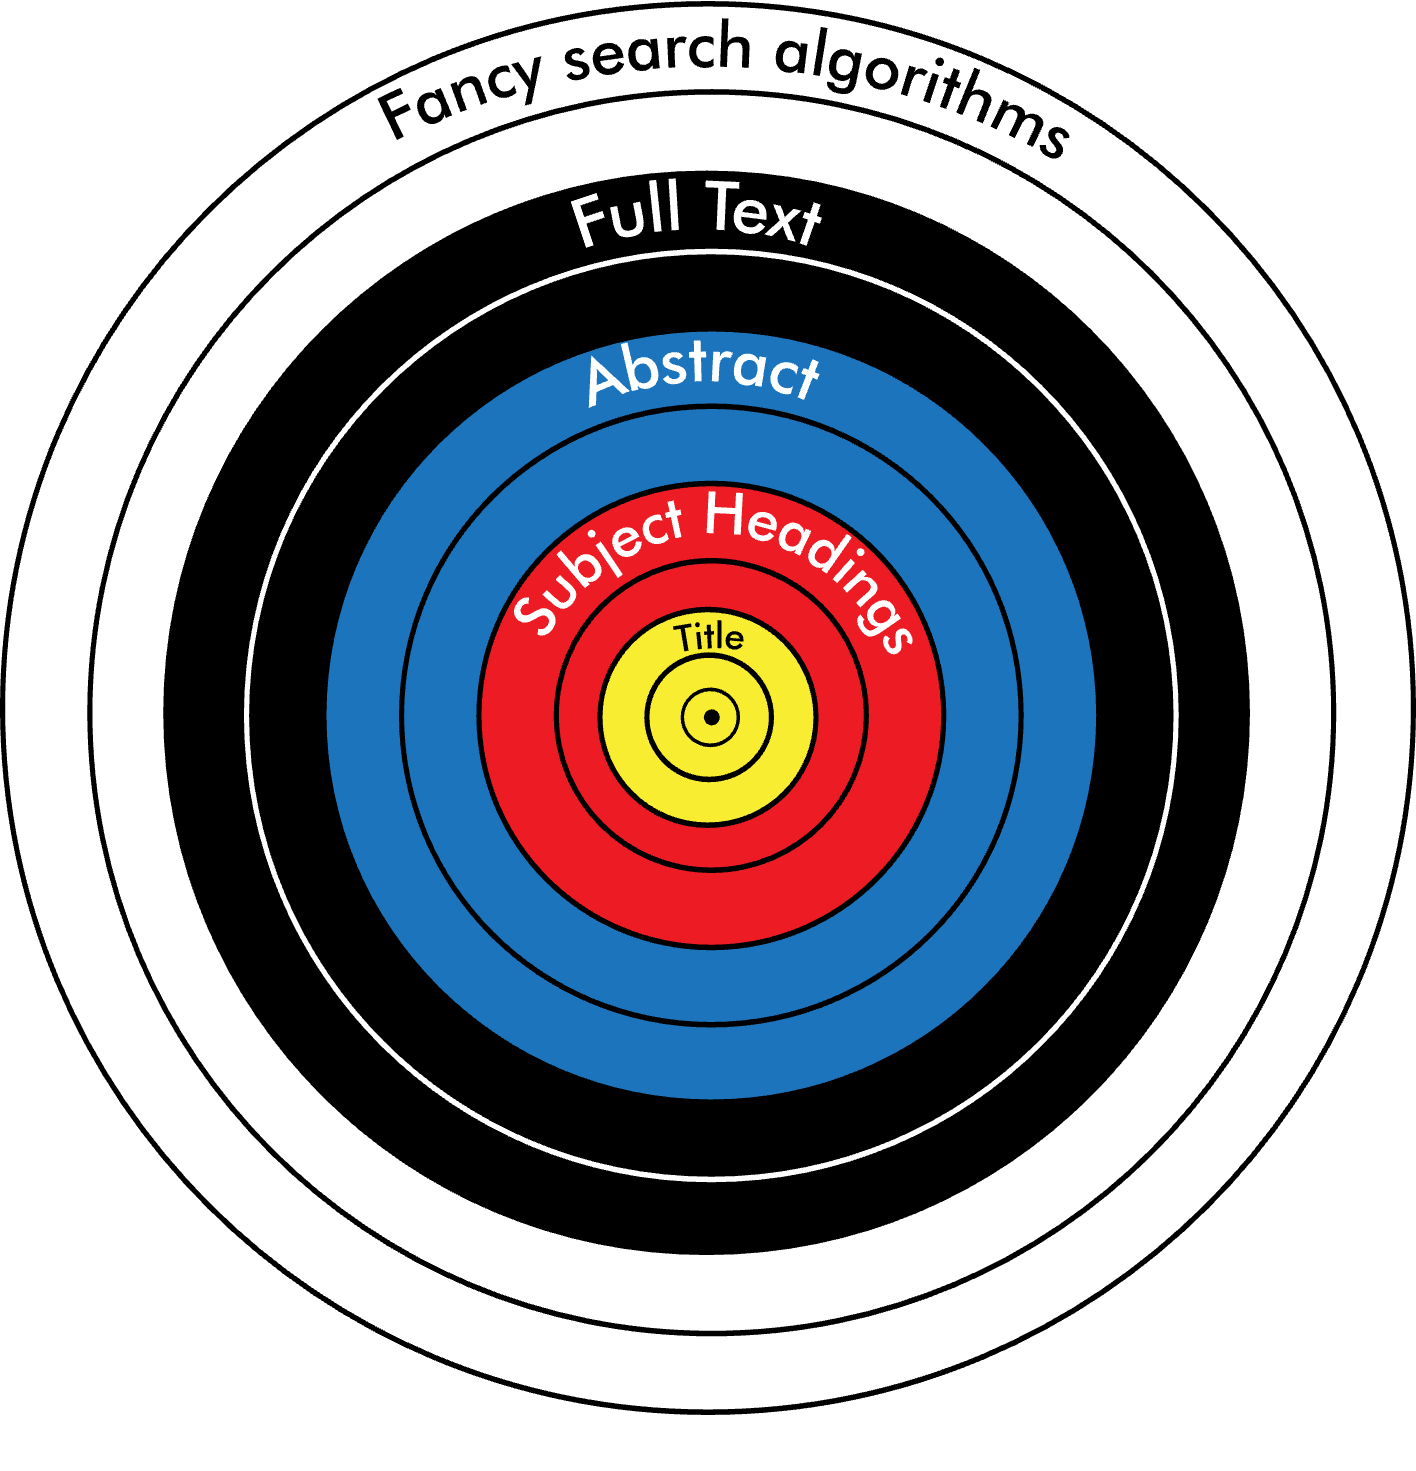 An archery target. The outer white section represents fancy search algorithms; the black section (the next ring in) represents a full text search; the blue ring is the abstract; the red ring is our subject headings; and the gold at the centre is the title